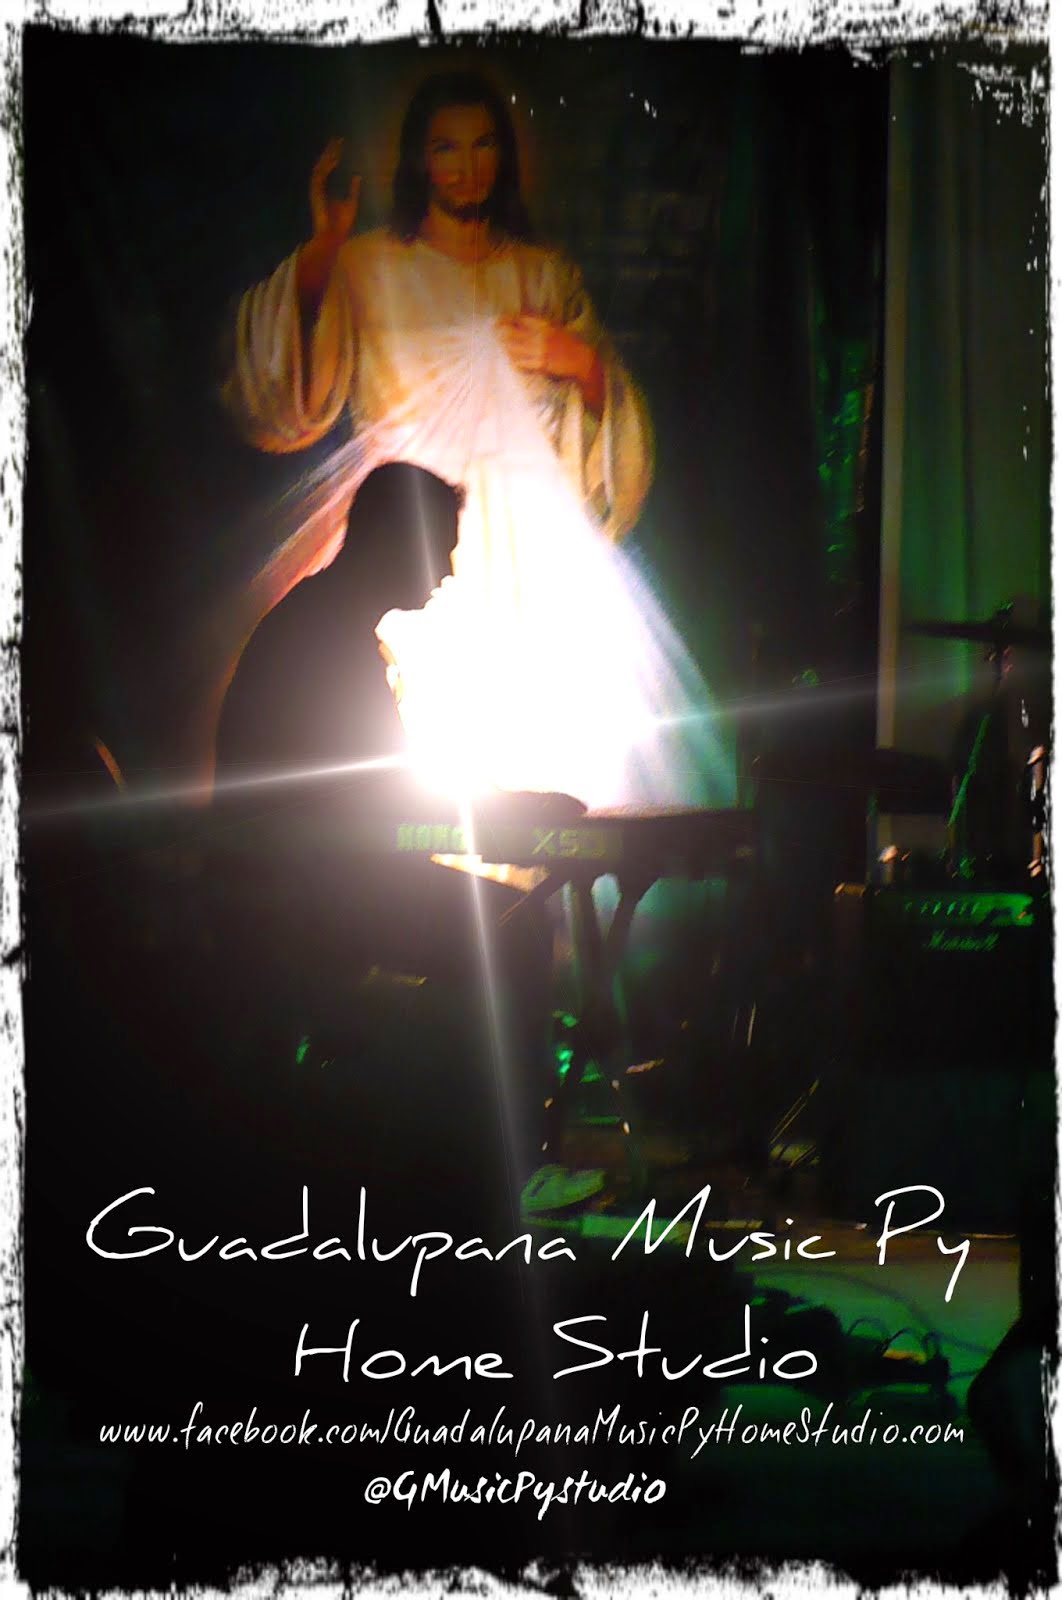 Guadalupana Music Py-HomeStudio